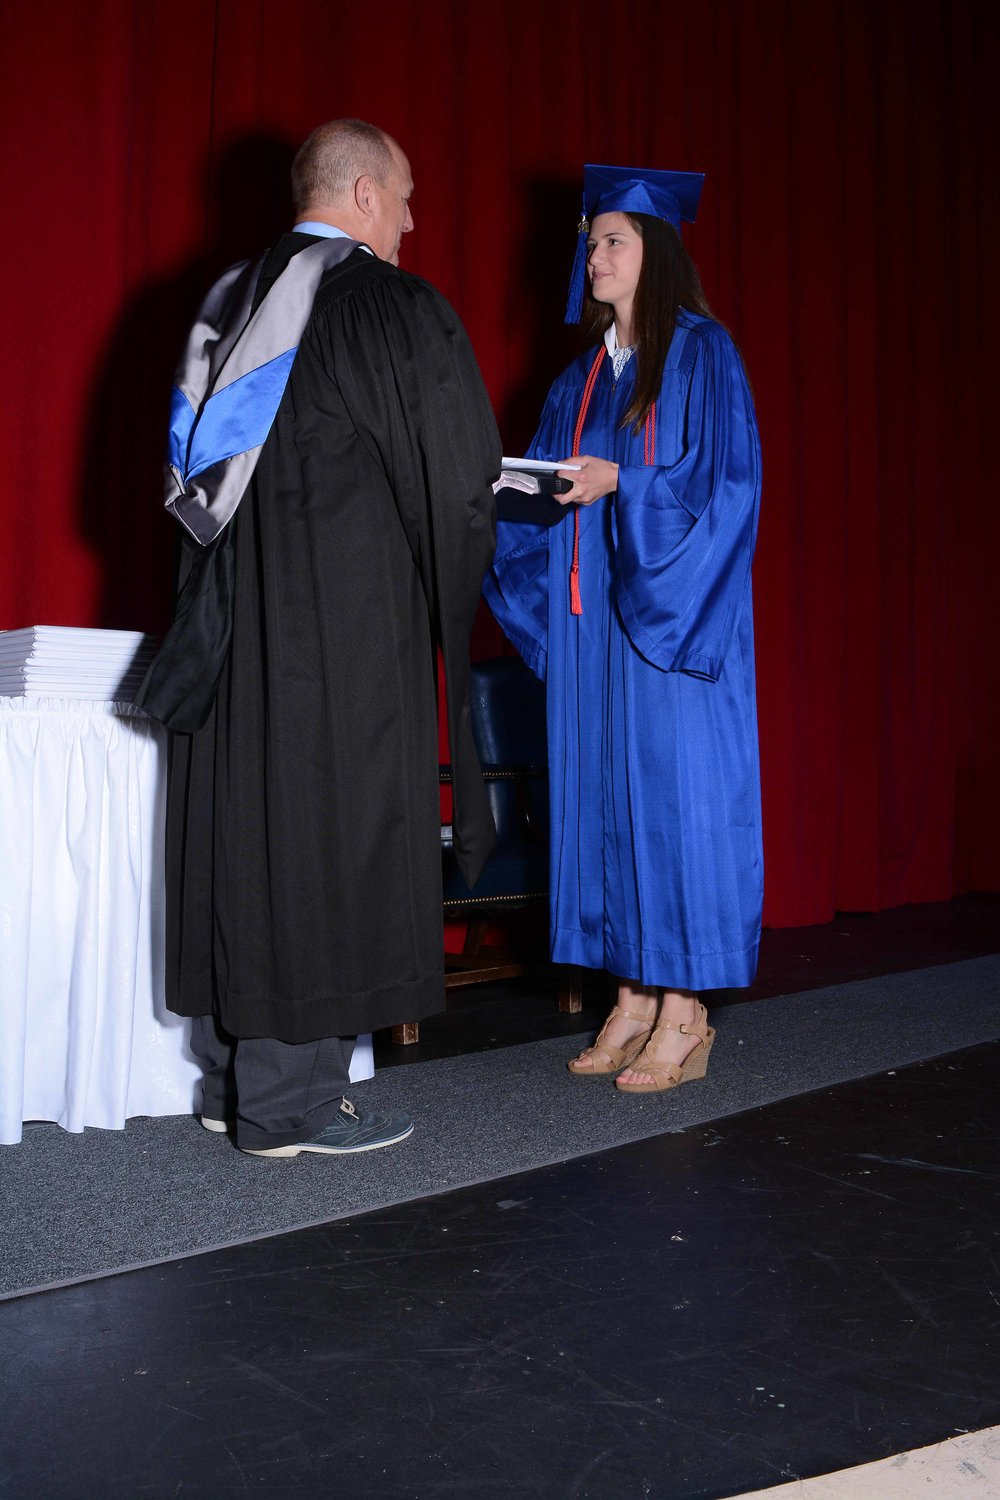 May14 Commencement99.jpg